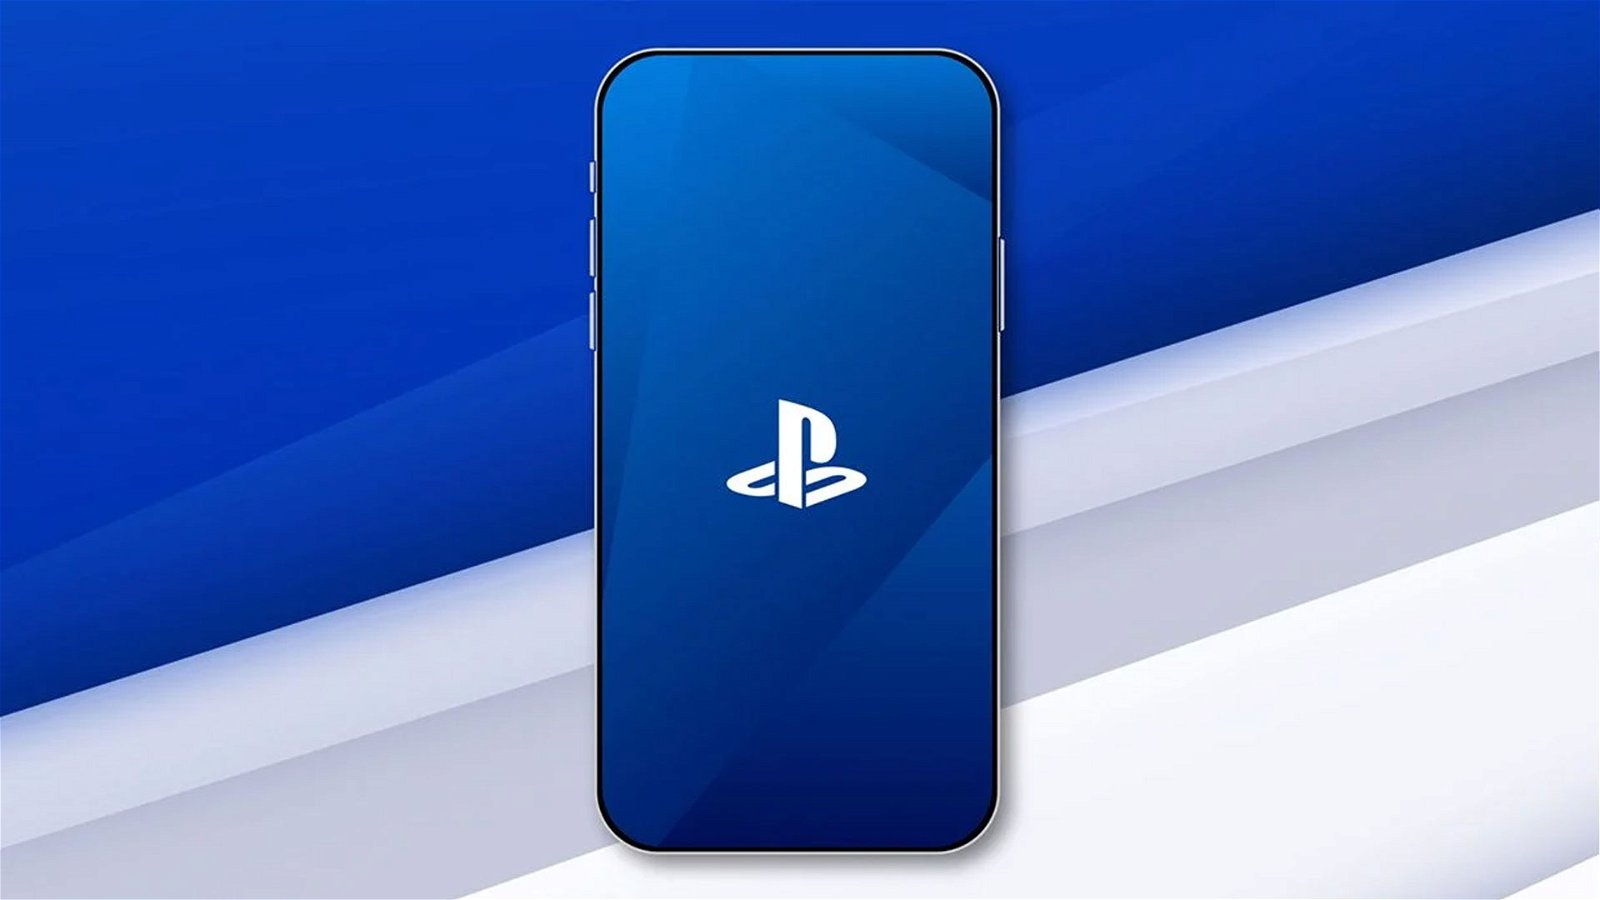 PlayStation App for Android and iOS Receives Major Overhaul, PS Messages Reintegration and More